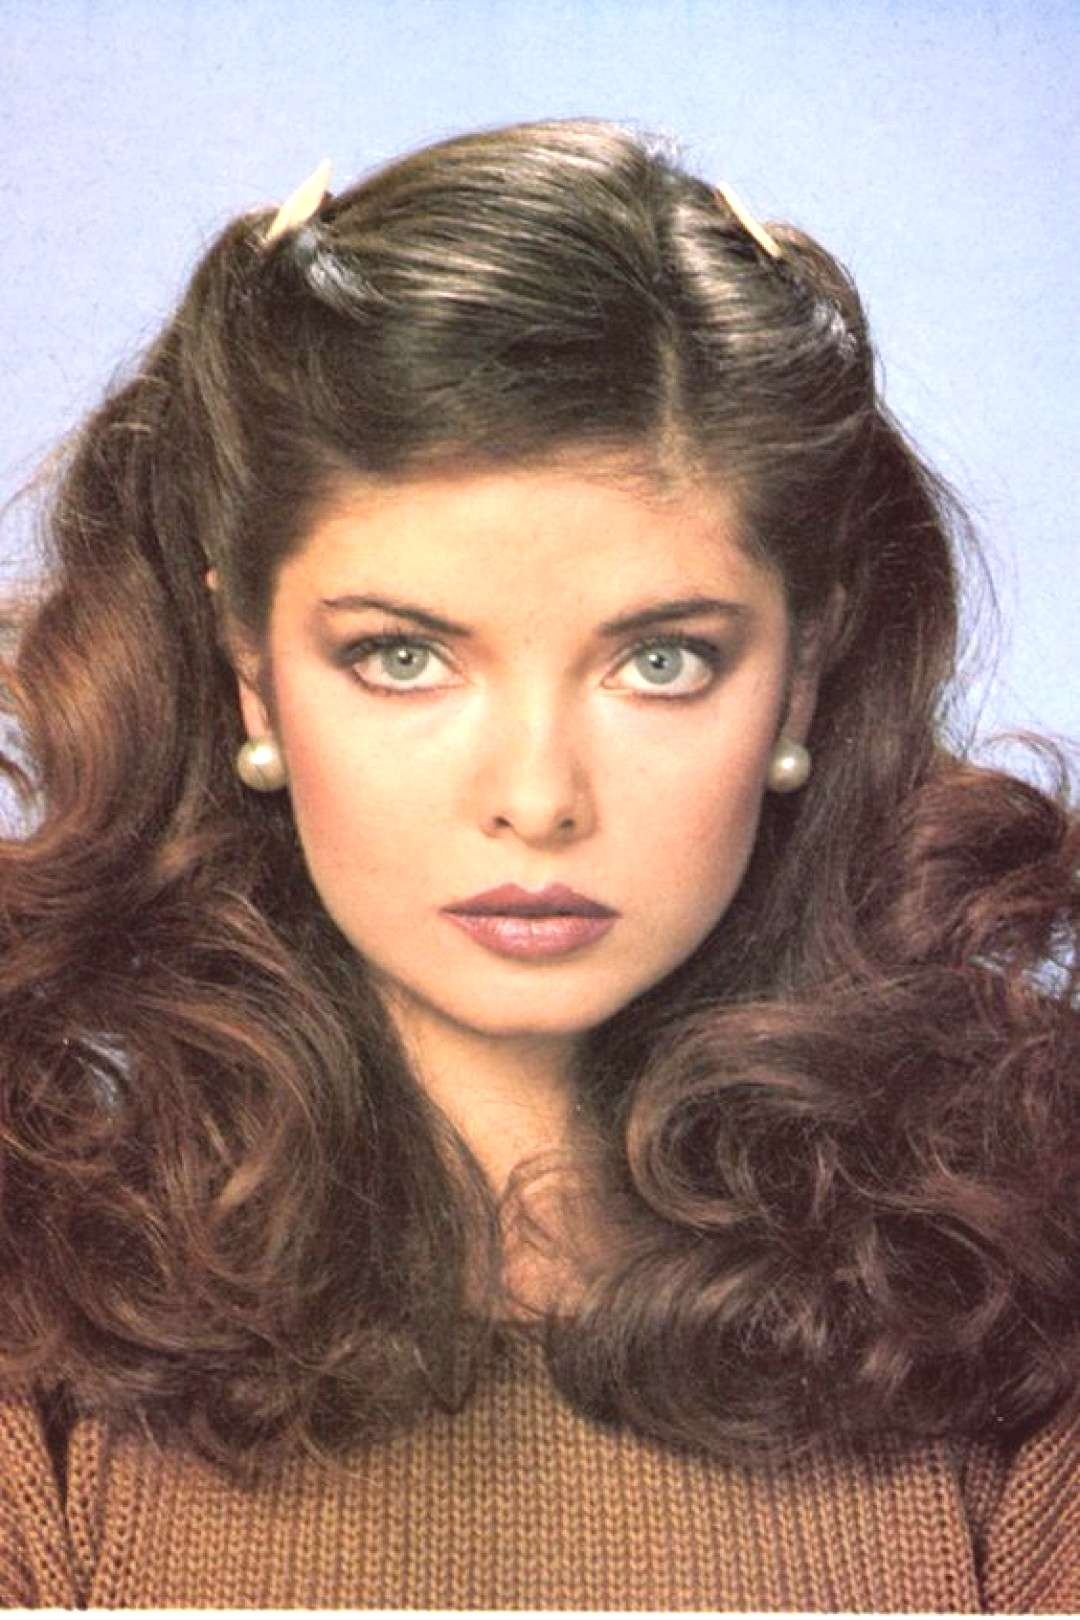 Beauty Curly Hairstyles | 1970s 1980s Big hair head hair Face Eyebrow | hair hair coloring in the 1